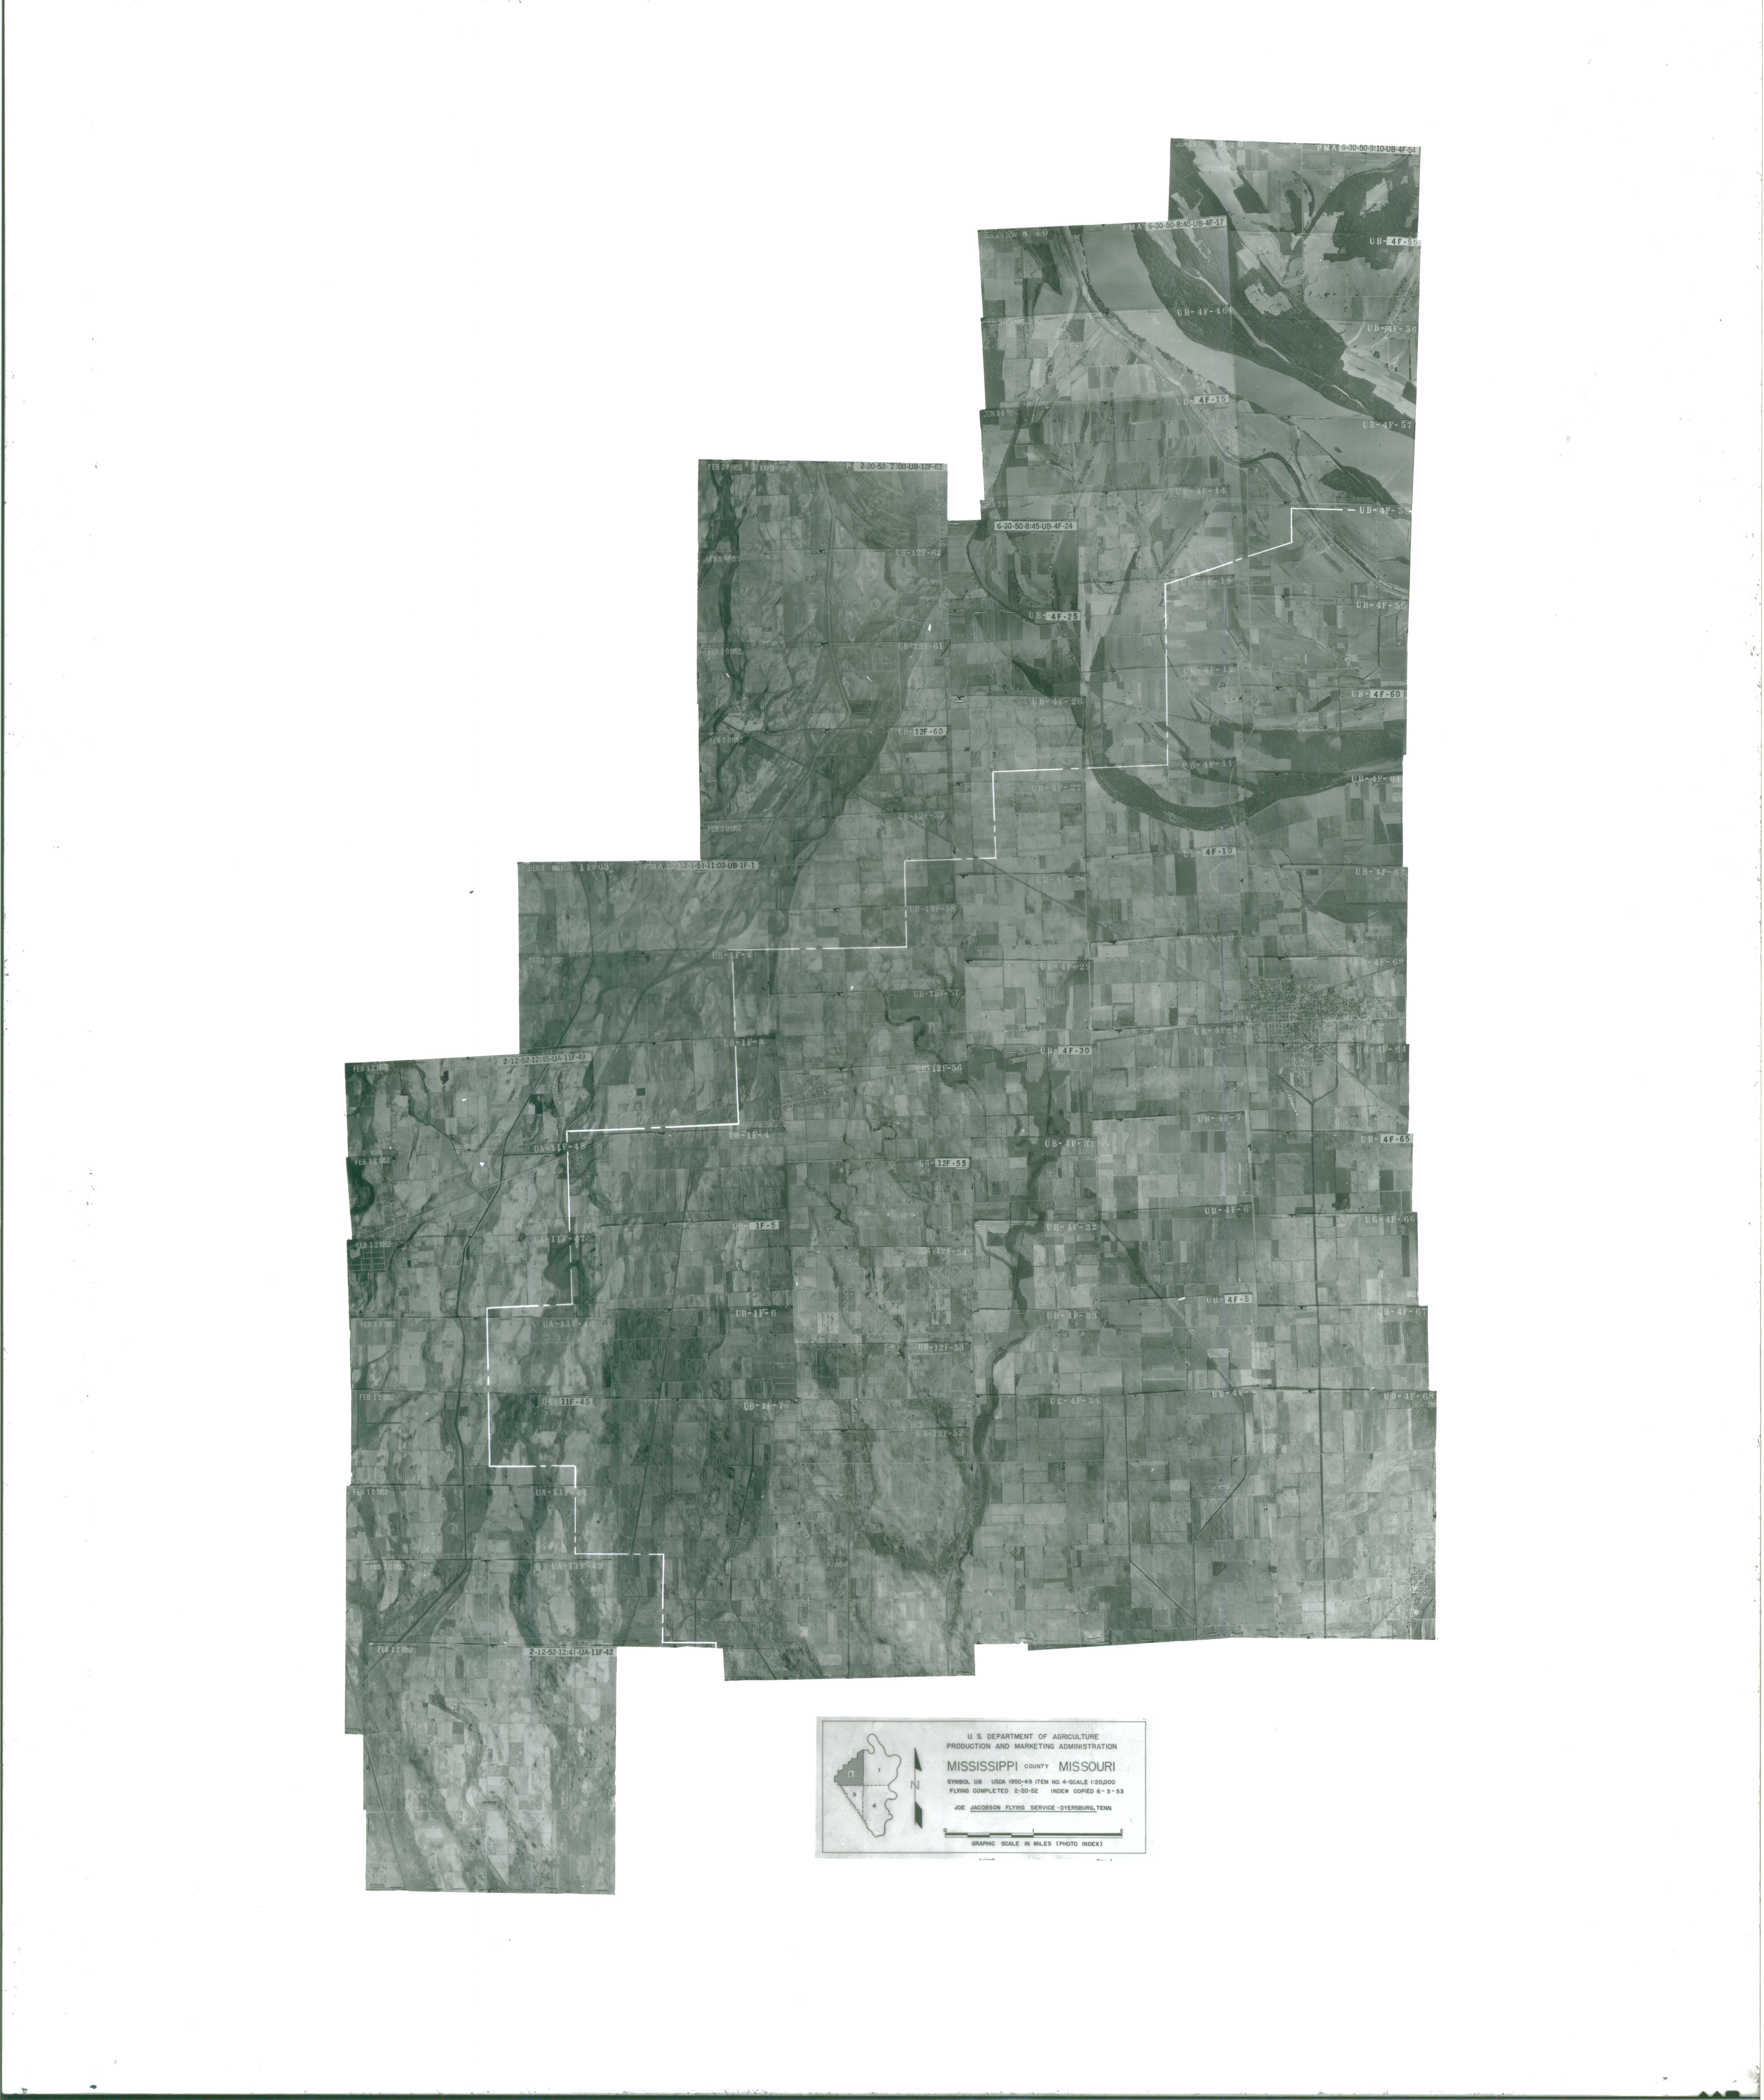 Index to Aerial Photography of Mississippi County, Missouri 2